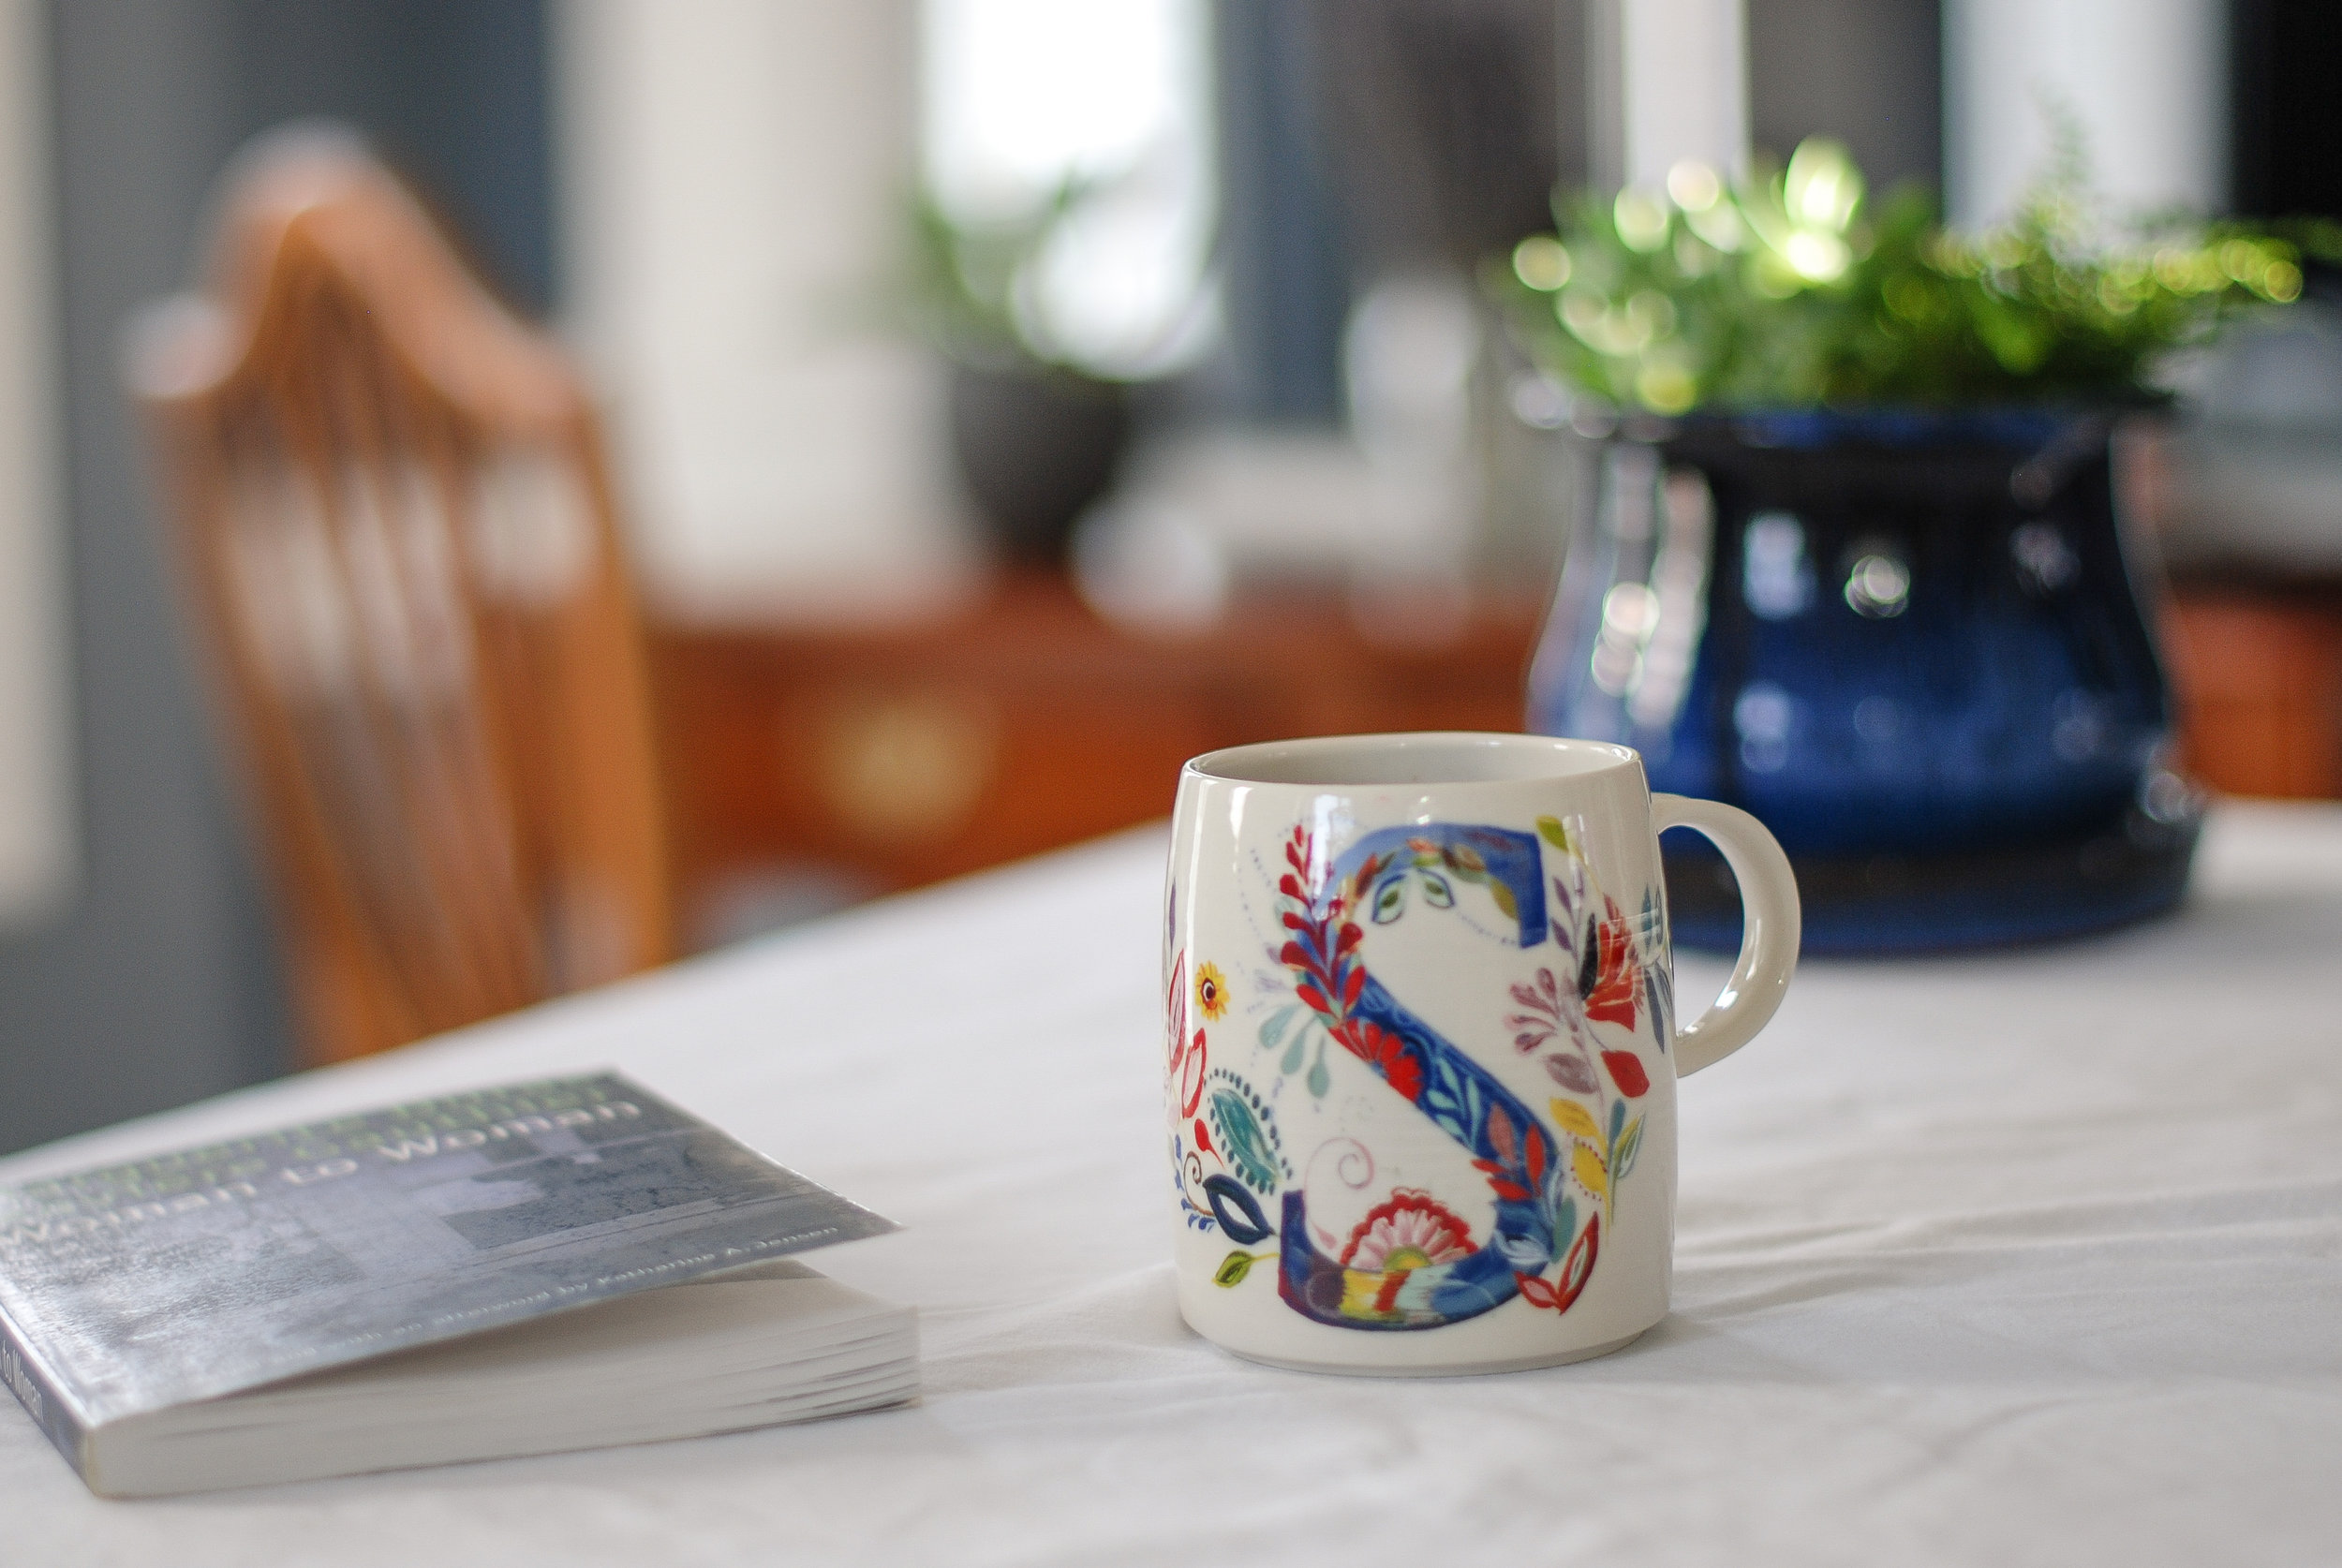 7-coffee and such-11.jpg